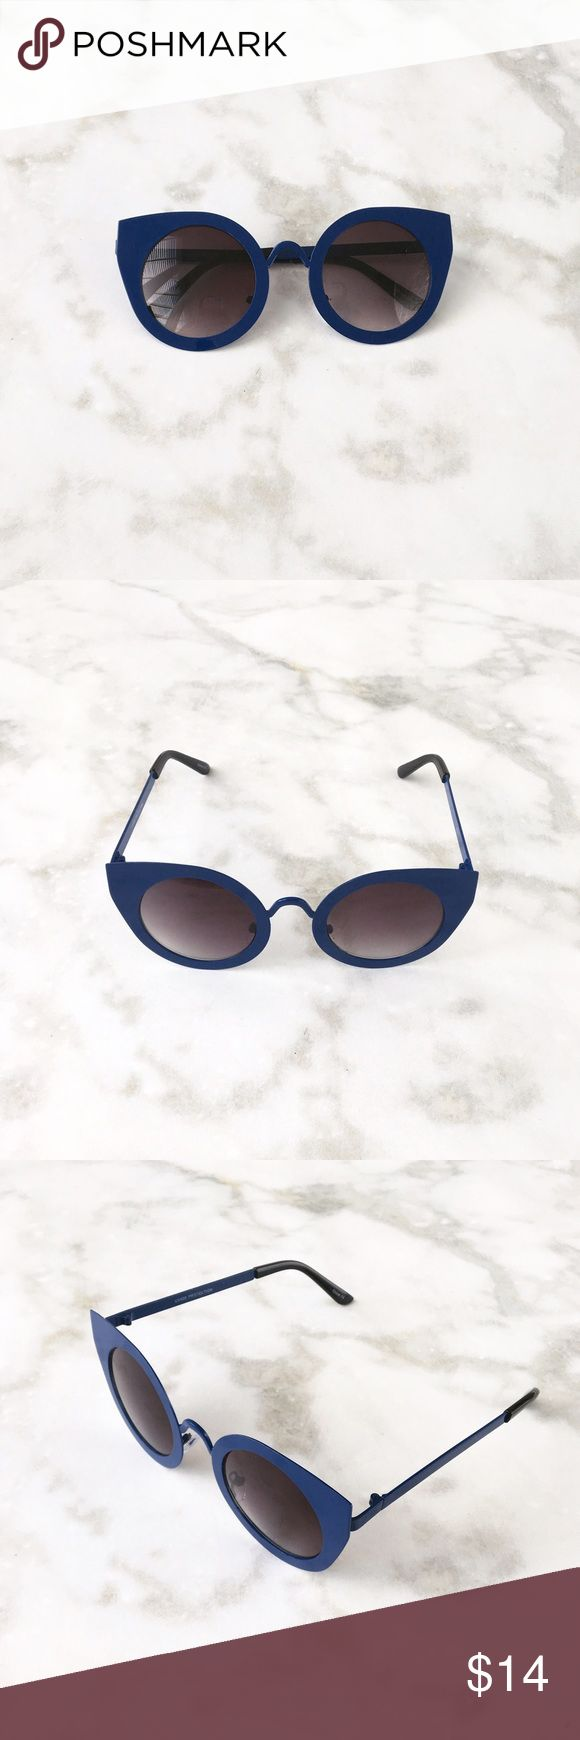 DARK BLUE CATEYE SUNGLASSES Dark blue thick frame cat eye sunglasses. Black lens. Price firm unless bundled Style Link Miami Accessories Sunglasses